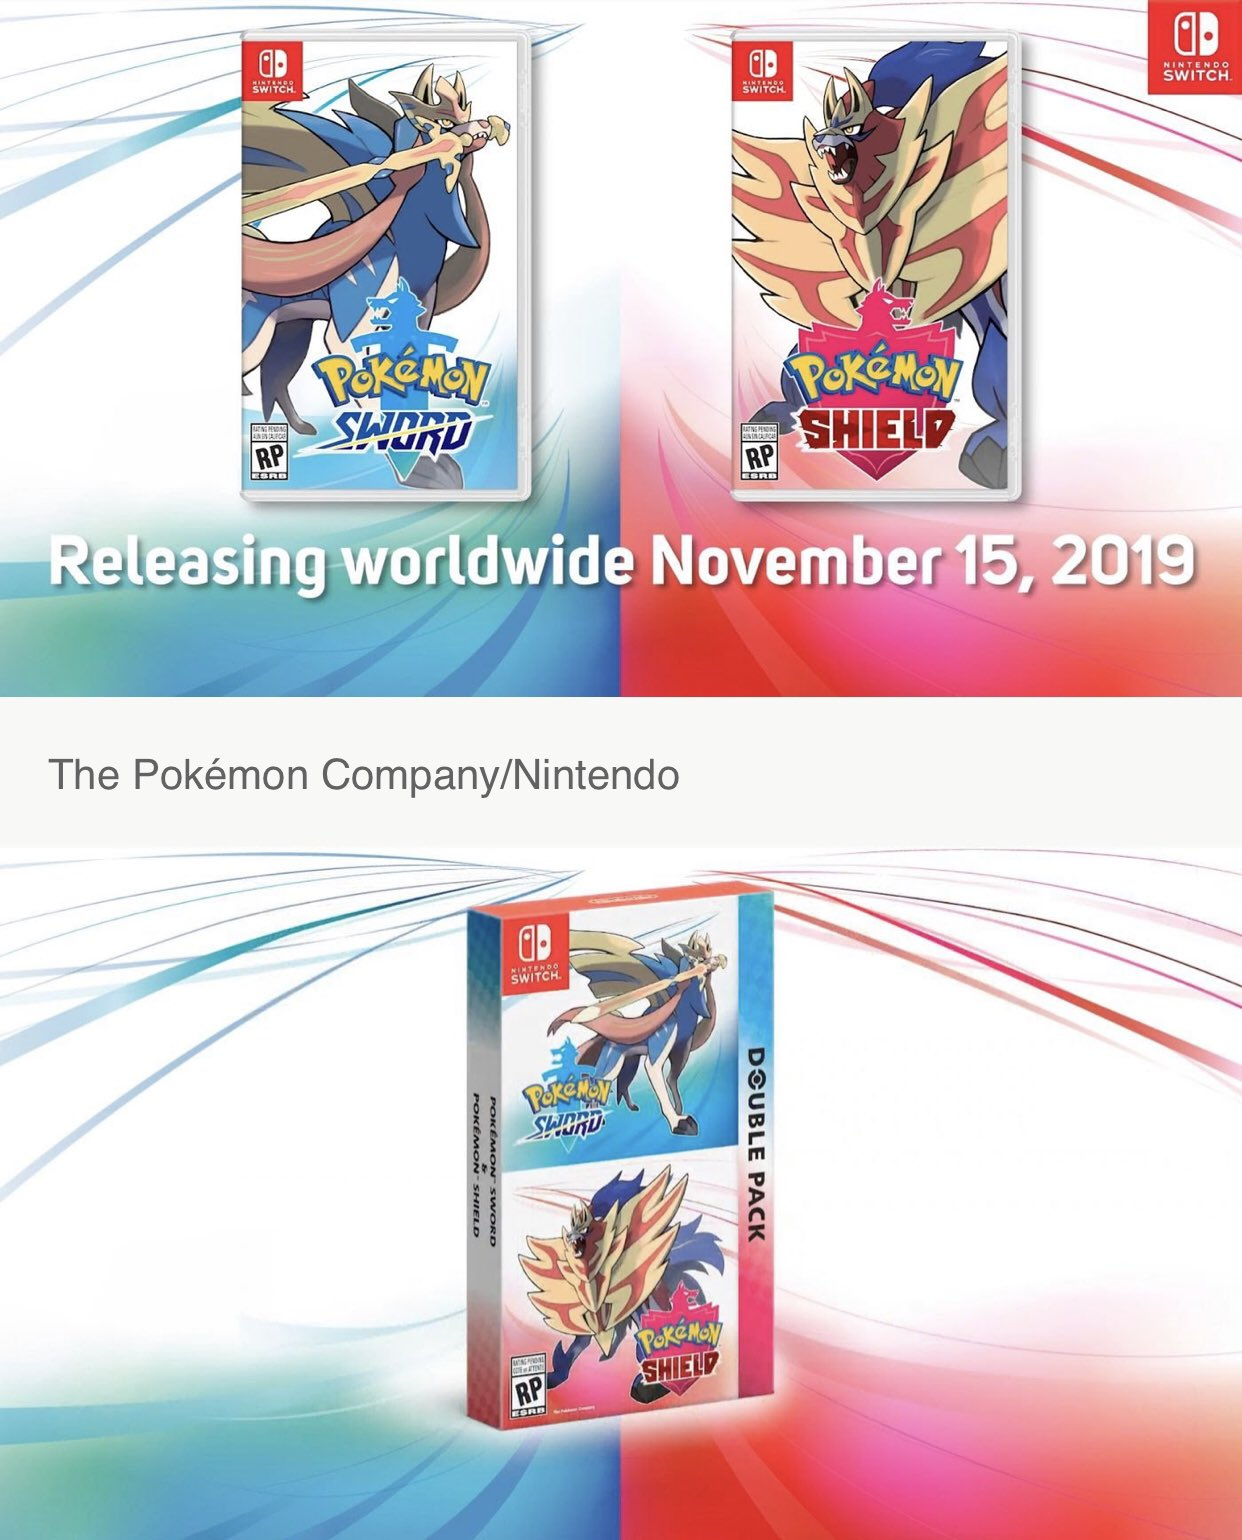 Pokémon Sword and Pokémon Shield boxart for Nintendo Switch on Paul Gale Network!